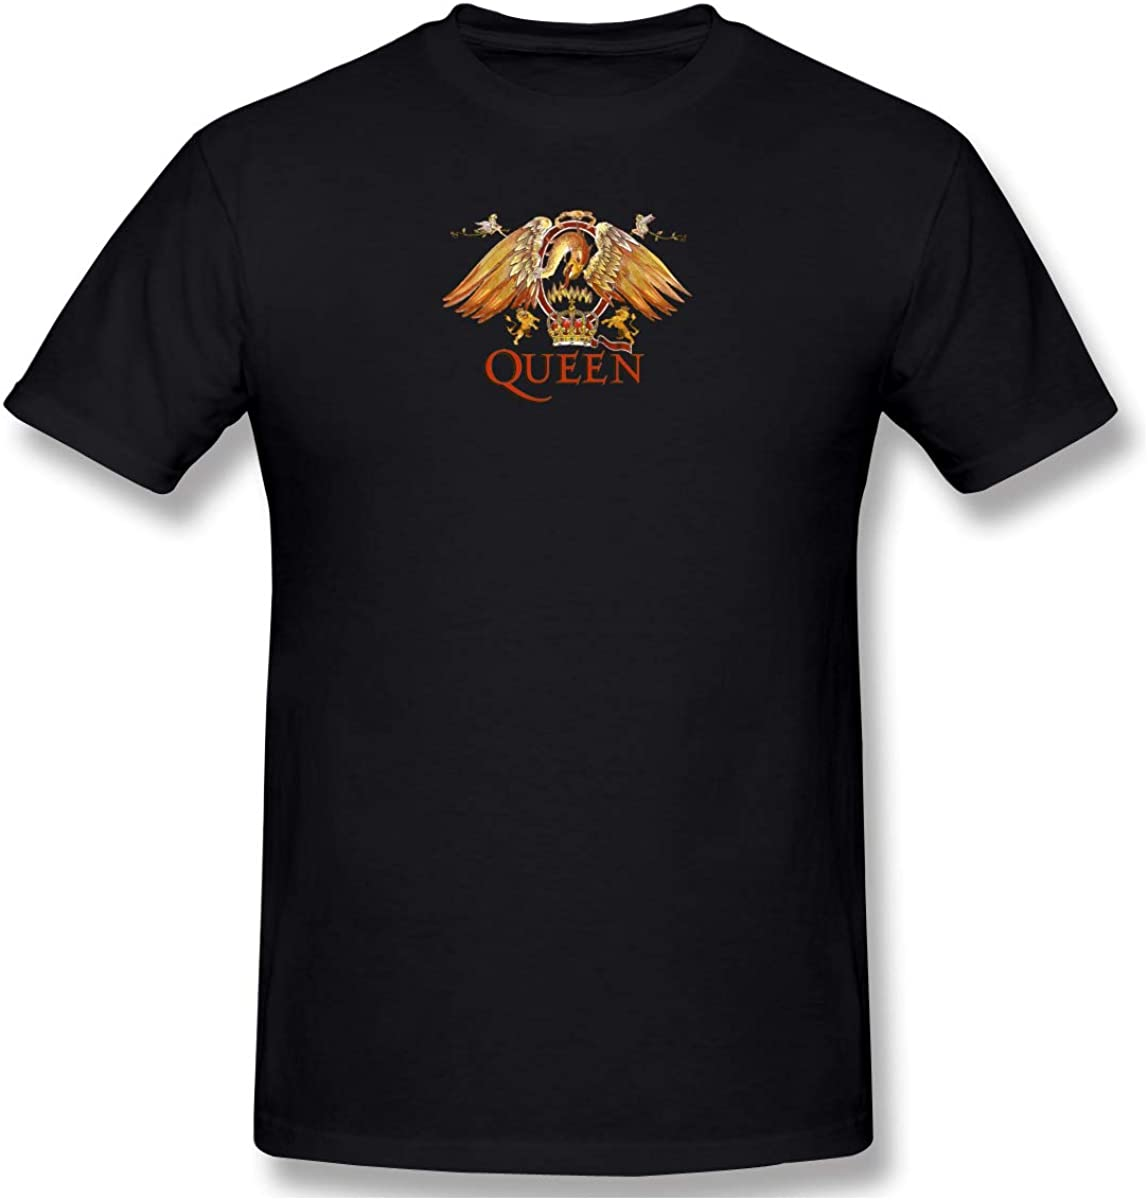 Queen Mens Short Sleeve T-Shirt Casual Classic Cotton T-Shirt with Round Collar Black The Ultimate Best of